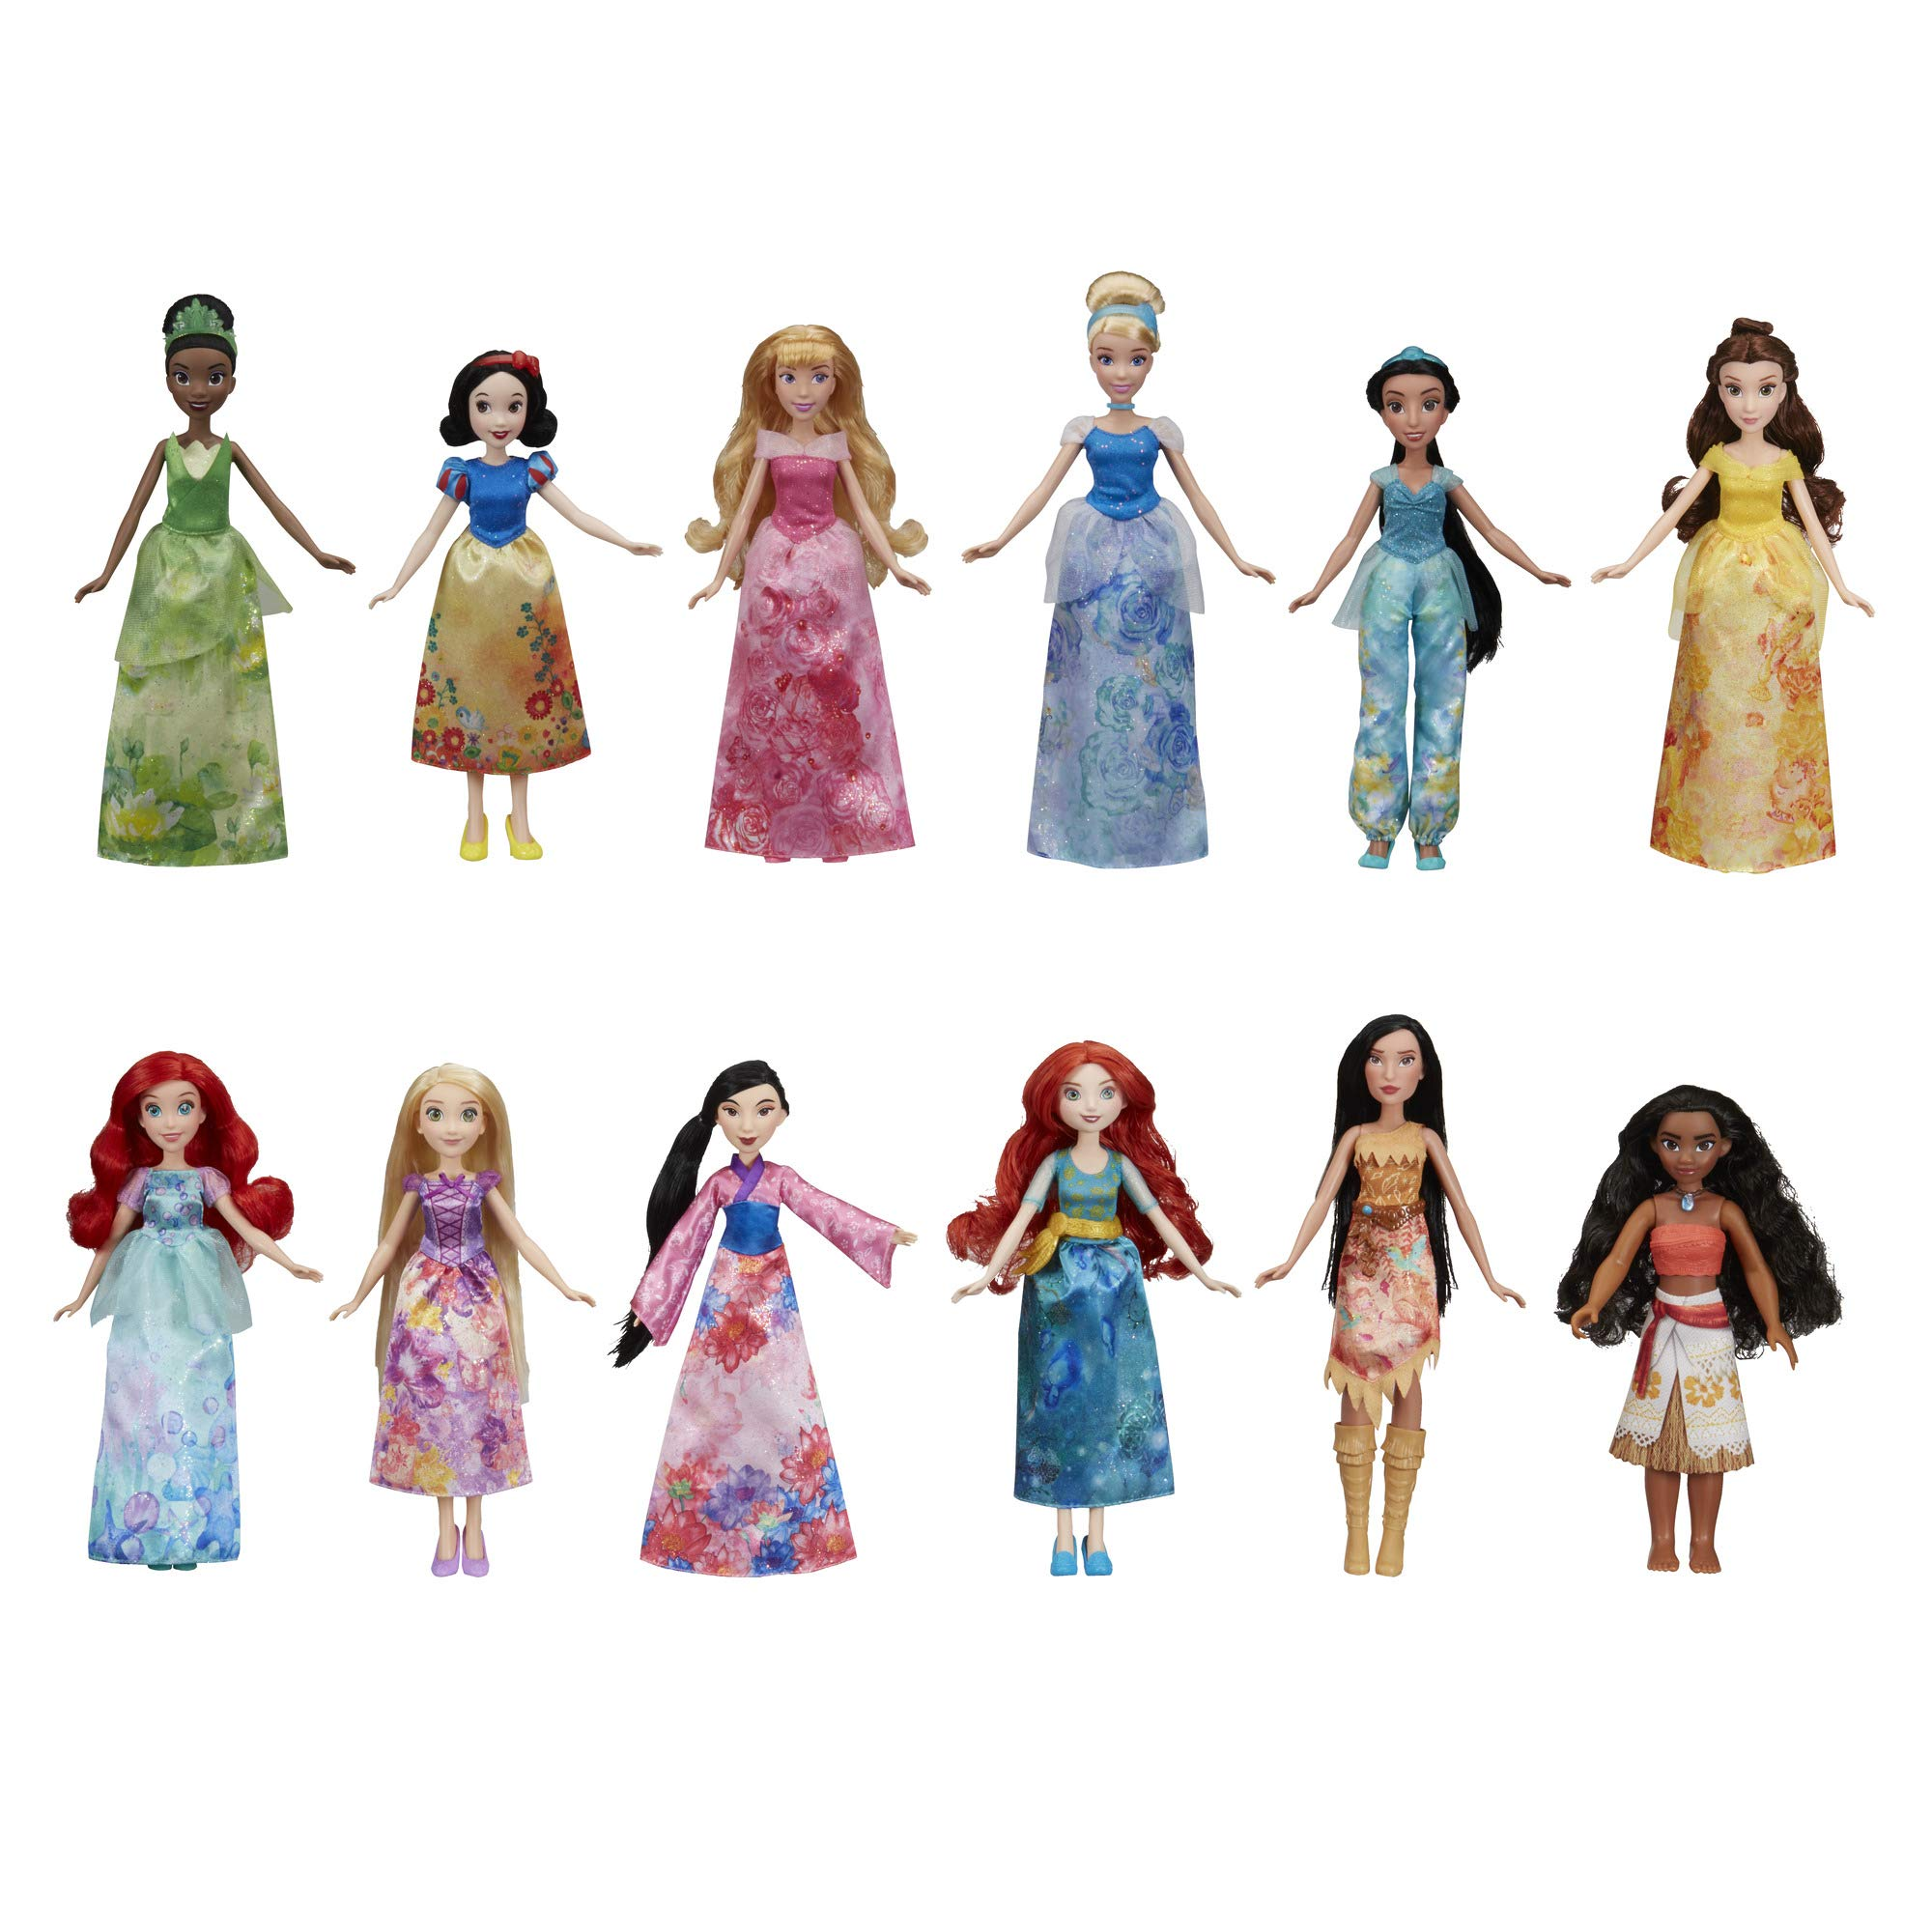 Disney Princess Royal Collection, 12 Fashion Dolls — Ariel, Aurora, Belle, Cinderella, Jasmine, Merida, Moana, Mulan, Pocahontas, Rapunzel, Snow White, Tiana (Amazon Exclusive)